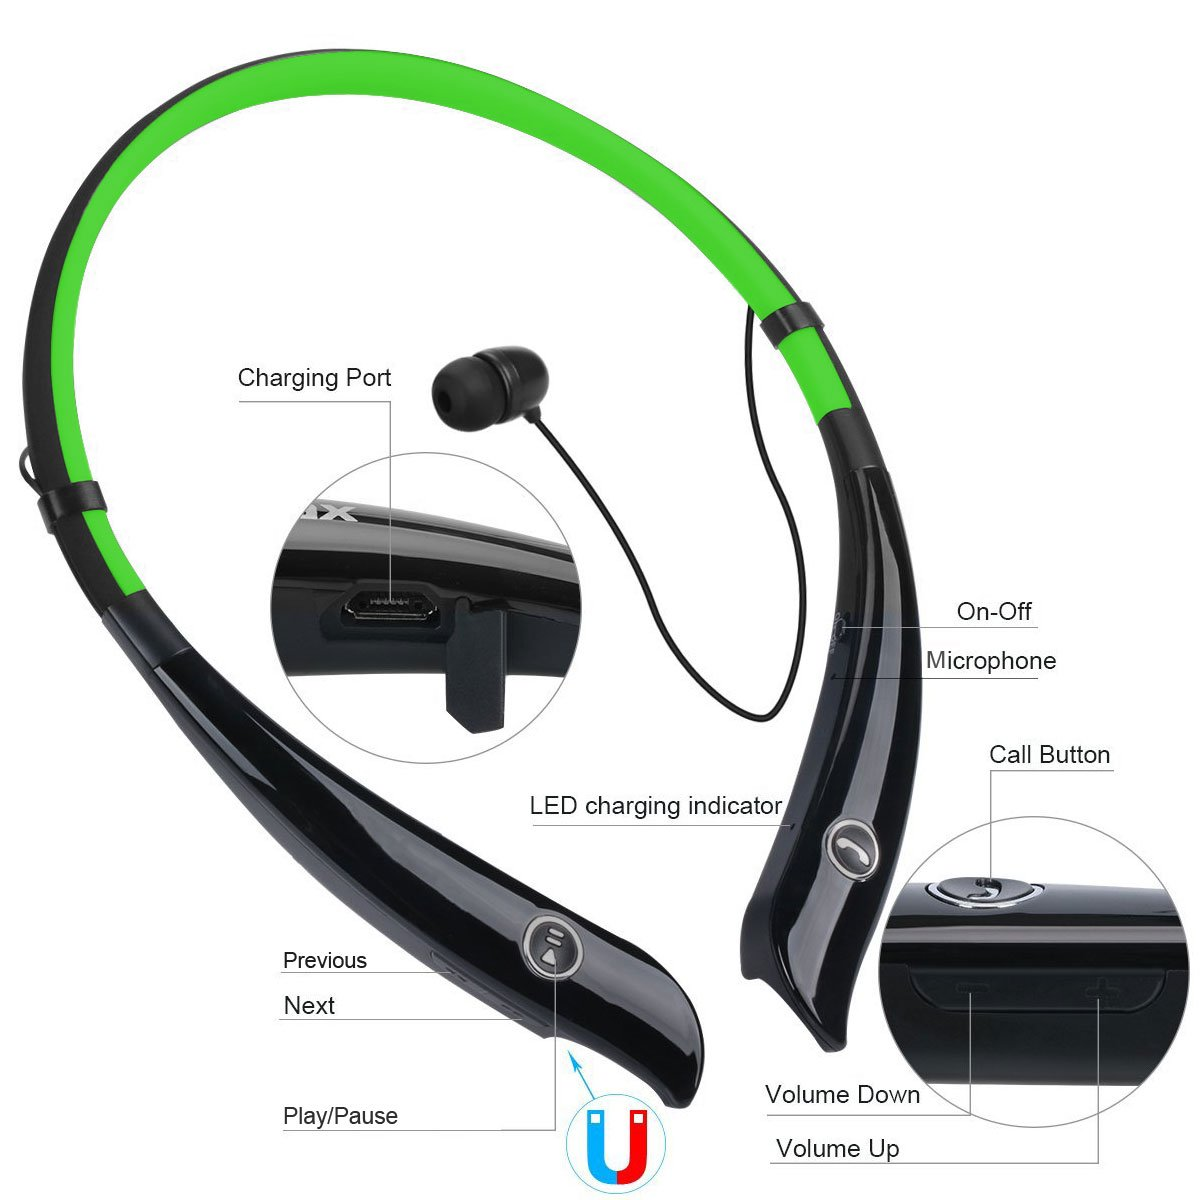 Wireless Headphones, Bluetooth Earbuds Neckband Magnetic Headset Stereo Hand-free Sports In-ear Noise Cancelling Earphone with Mic for iPhone 8/7/6 Samsung and Other Bluetooth Devices by Havan (Green)